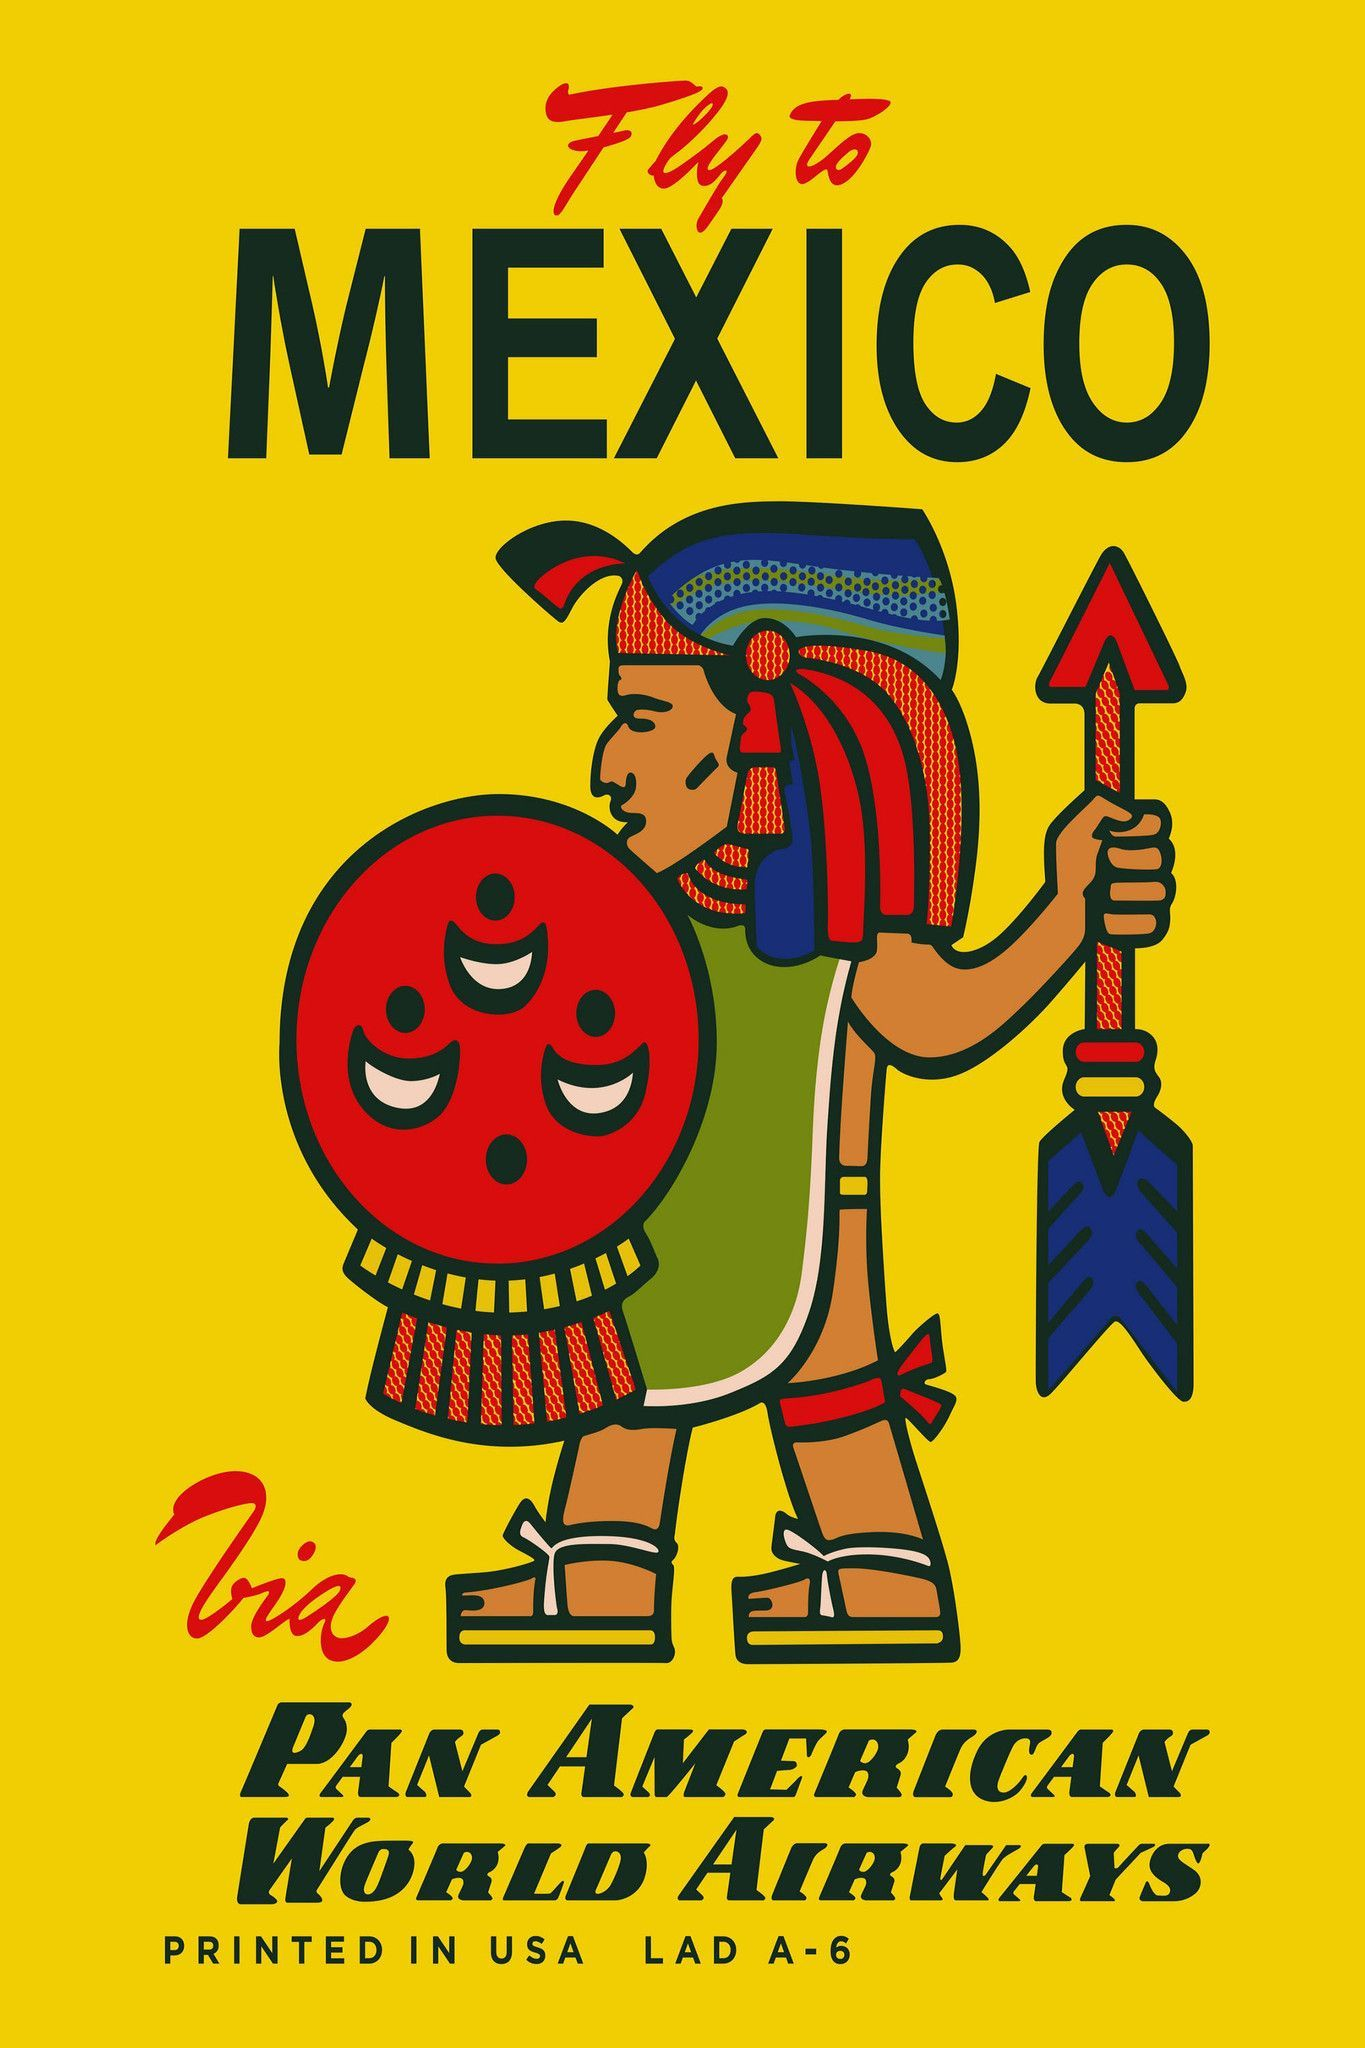 Mexico | Travel posters and Viva mexico